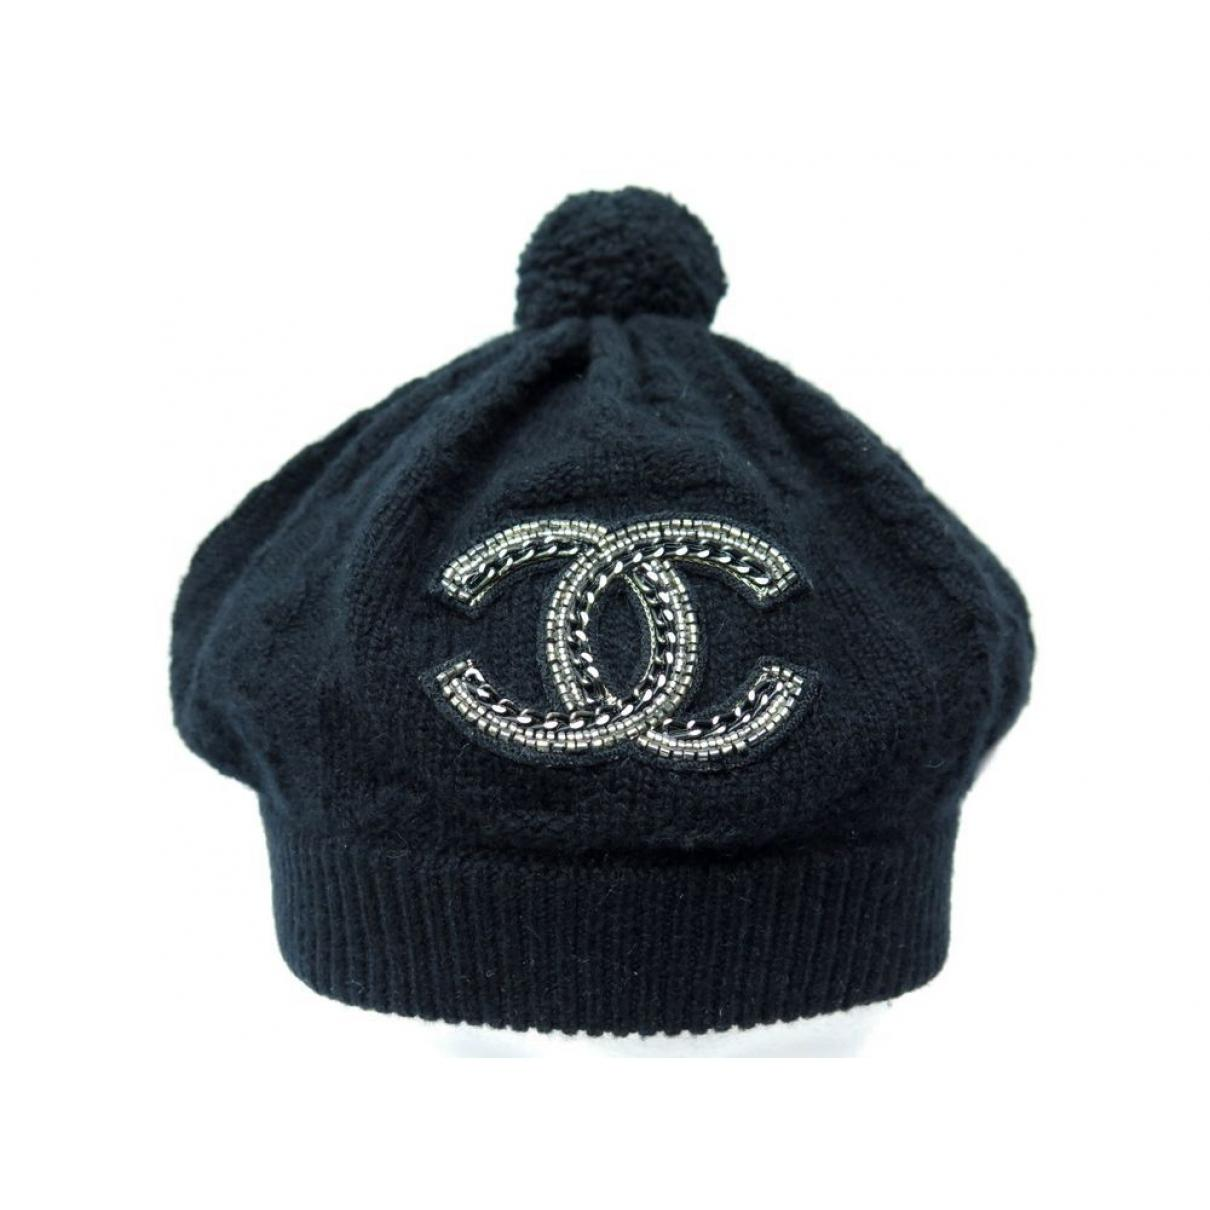 Lyst - Chanel Black Cashmere Hats in Black d15bd2f5611